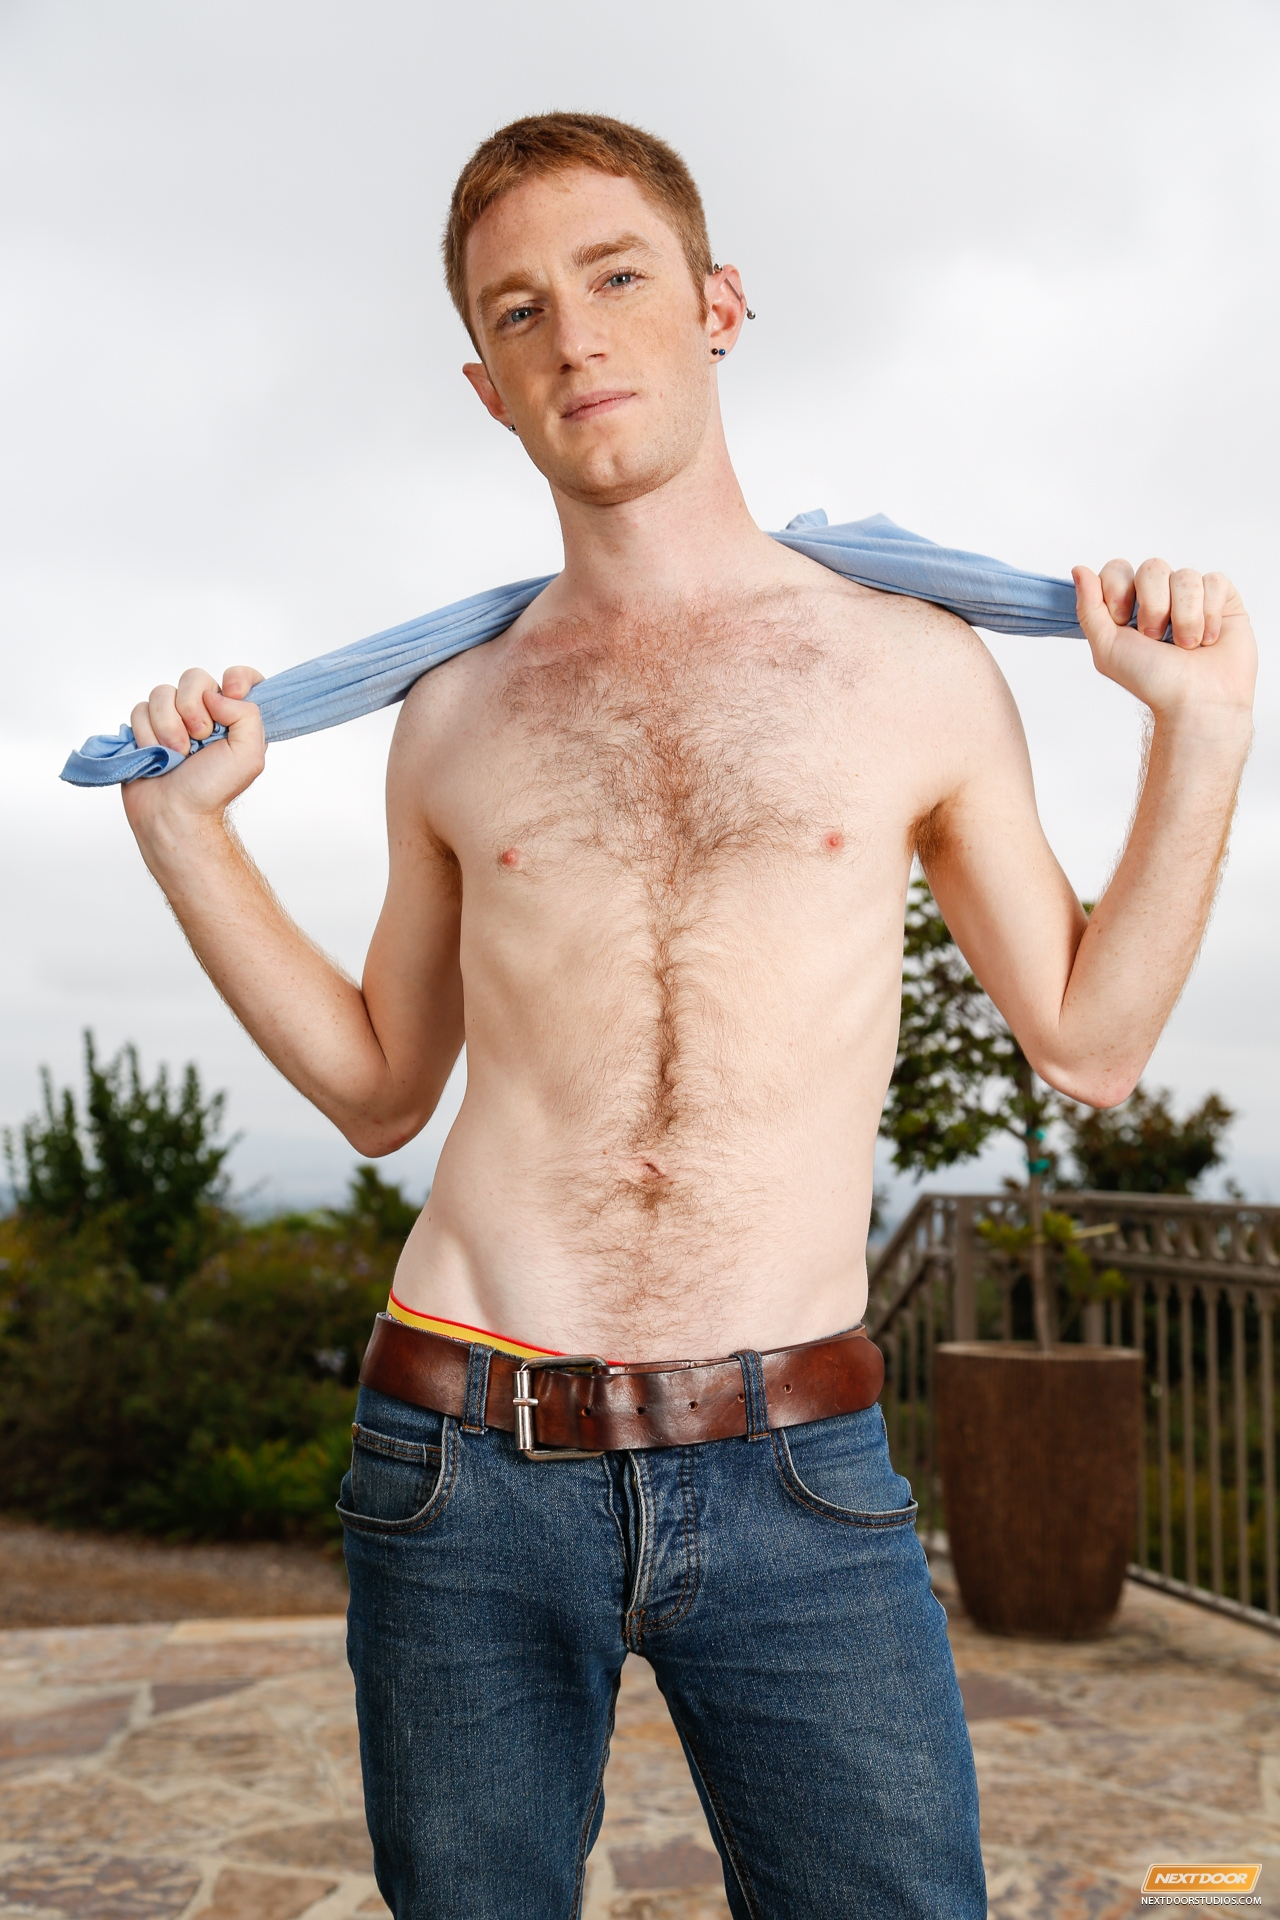 Actor Porno Gay Red seamus oreilly shows off his fuzzy young ginger body in a